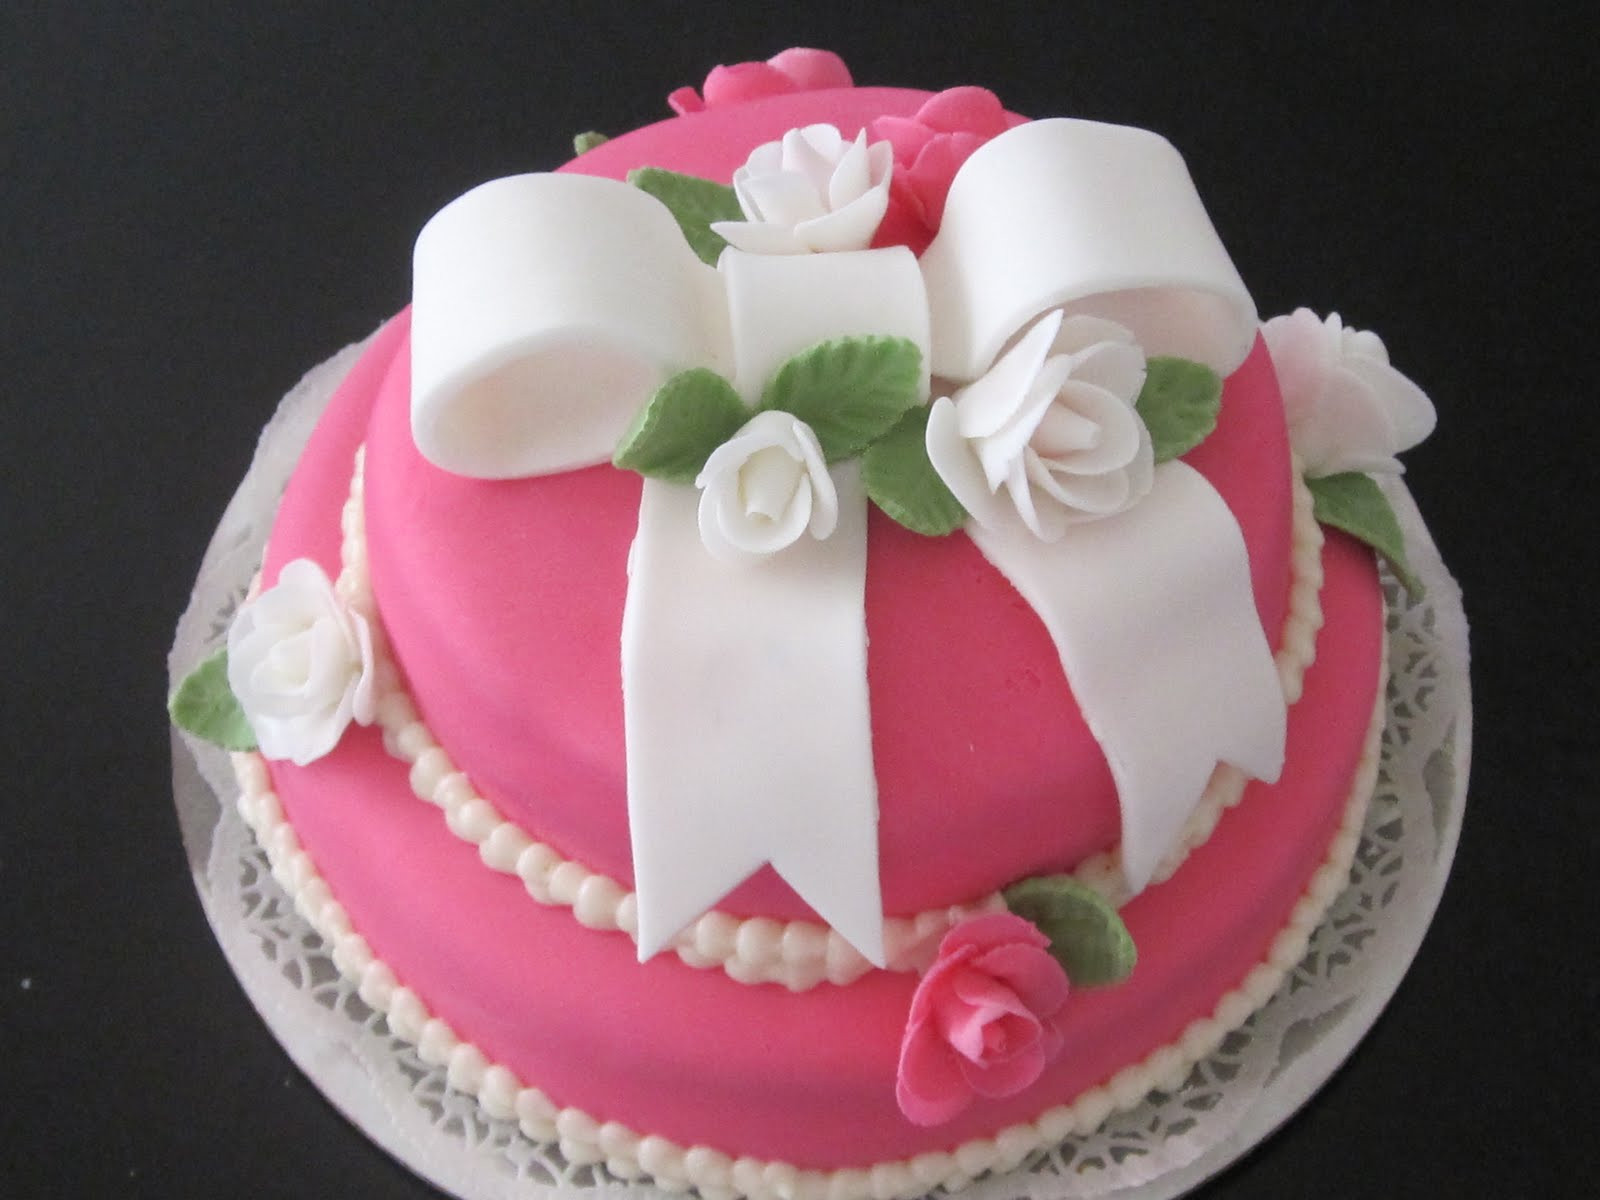 Best ideas about Girls Birthday Cake . Save or Pin Cakes by Laurel Girls Birthday Cakes Now.